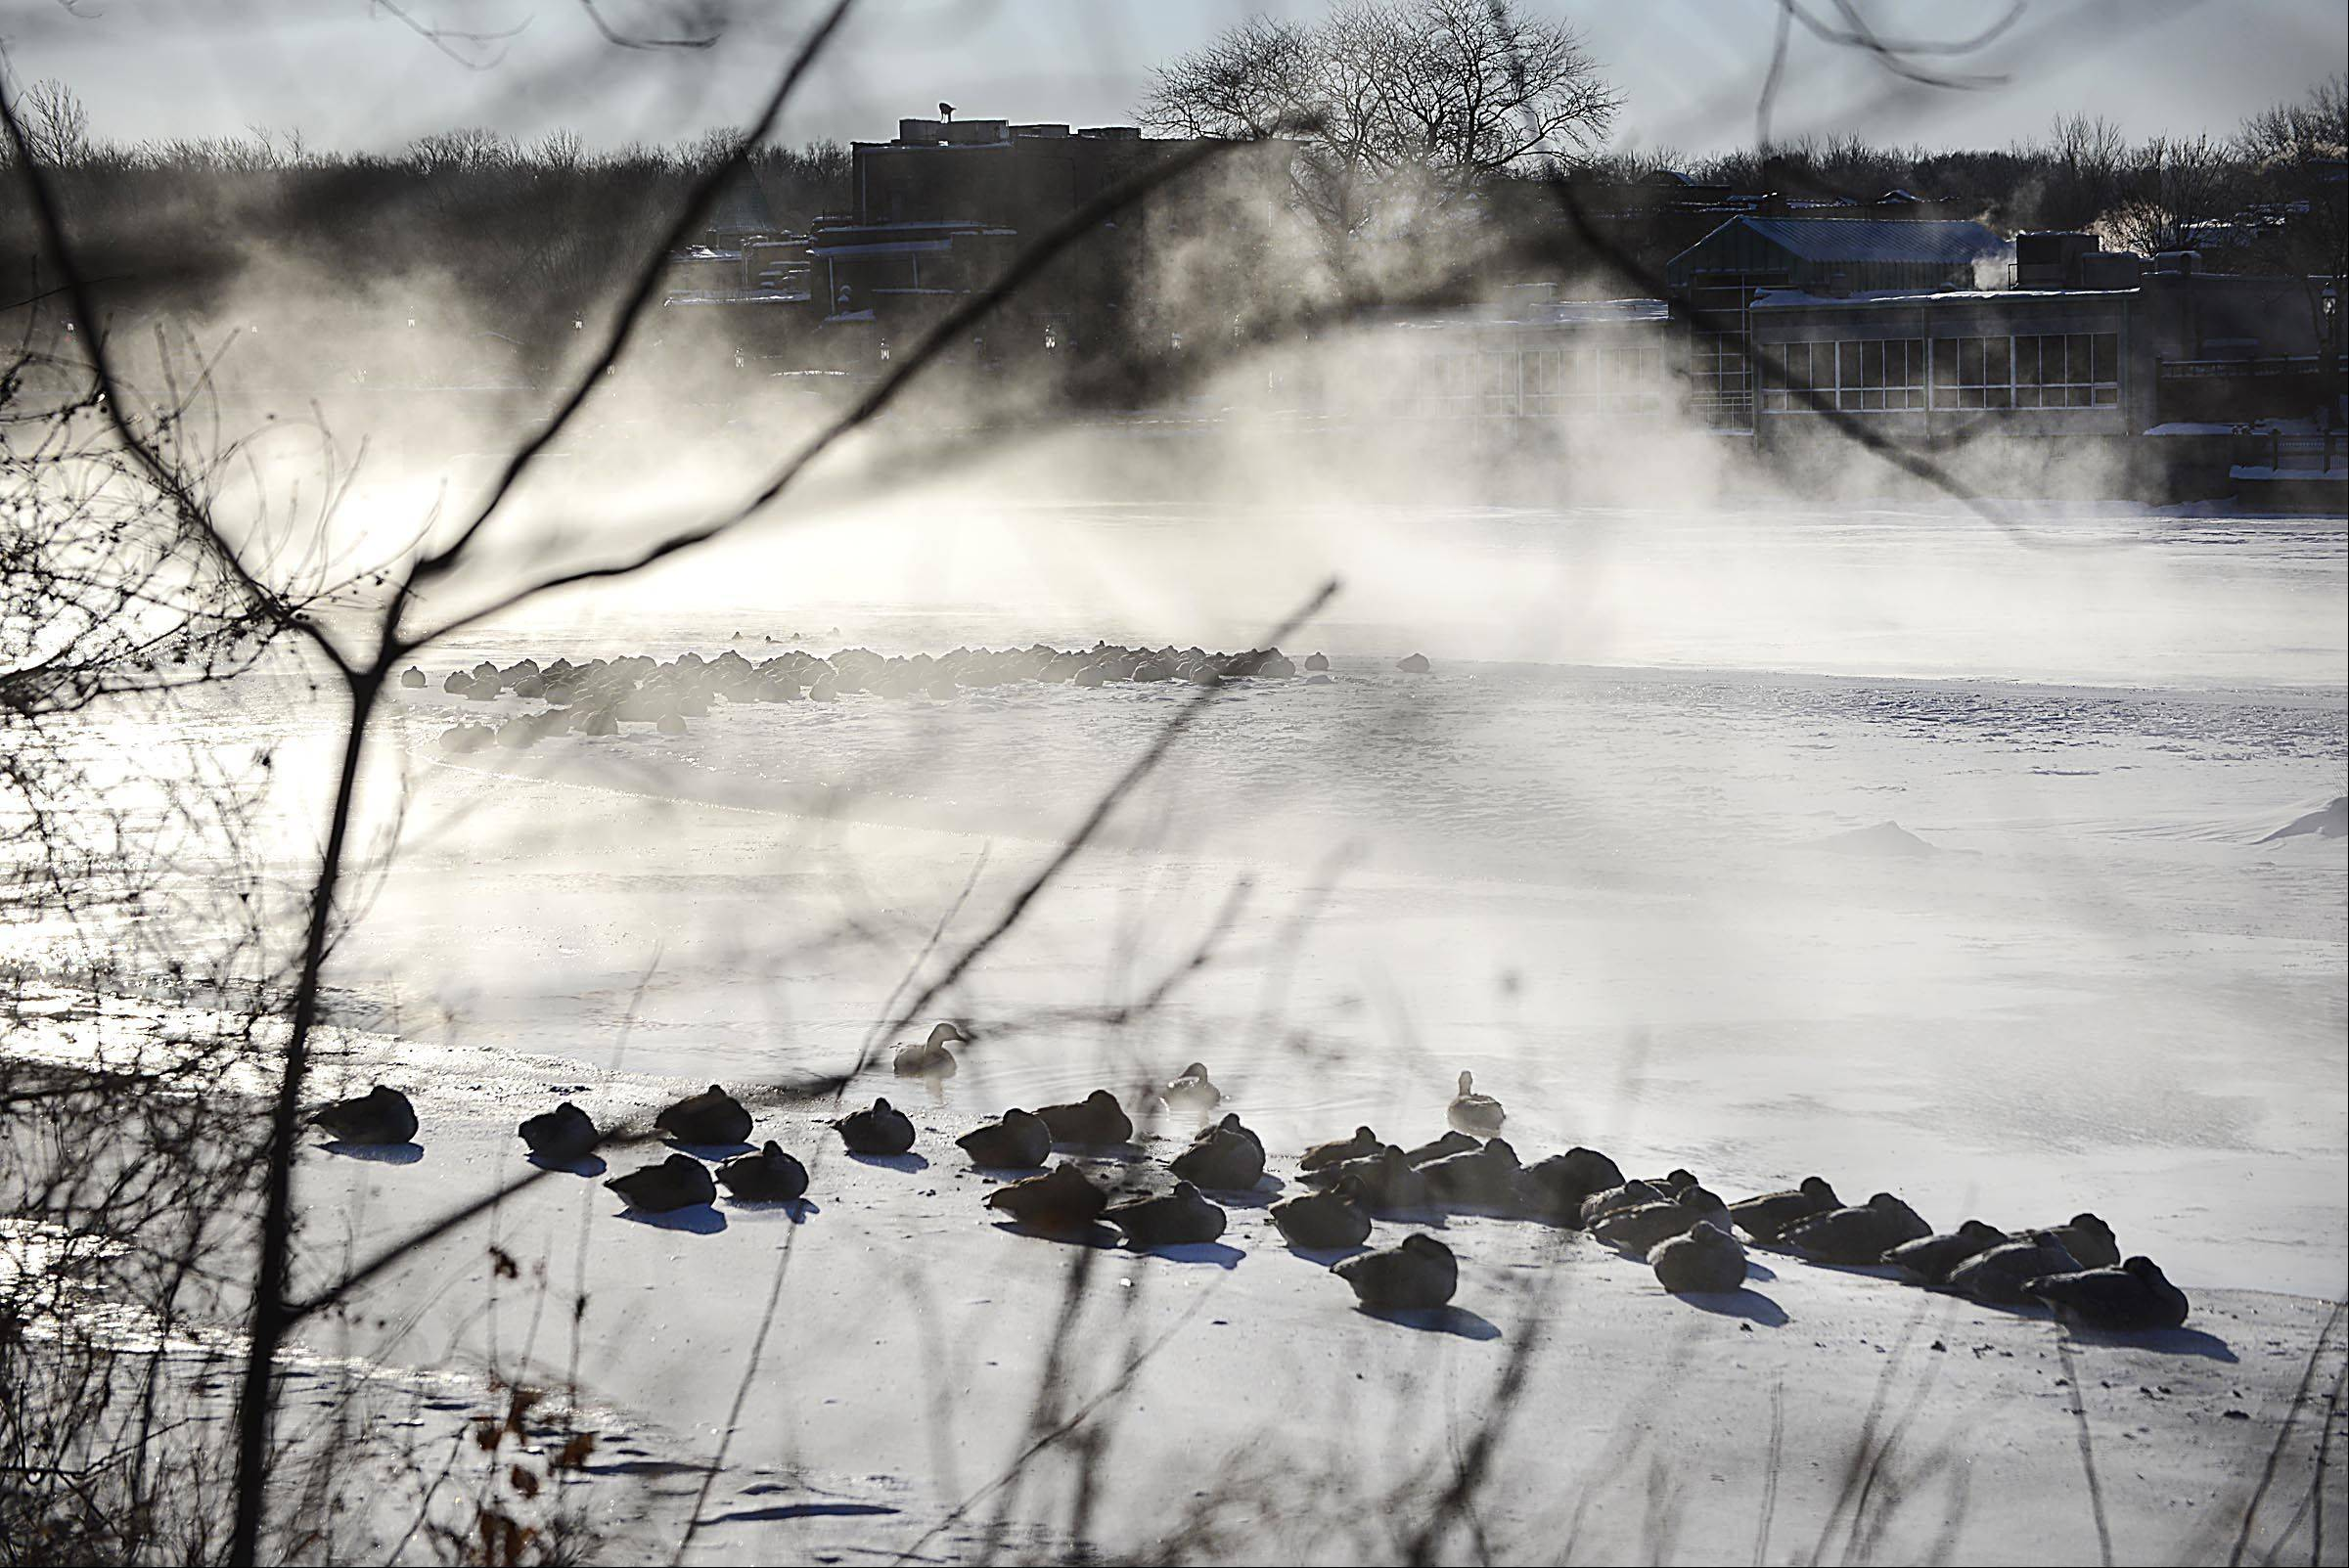 Geese huddle together on the frozen Fox River in East Dundee during Monday's freezing temperatures.